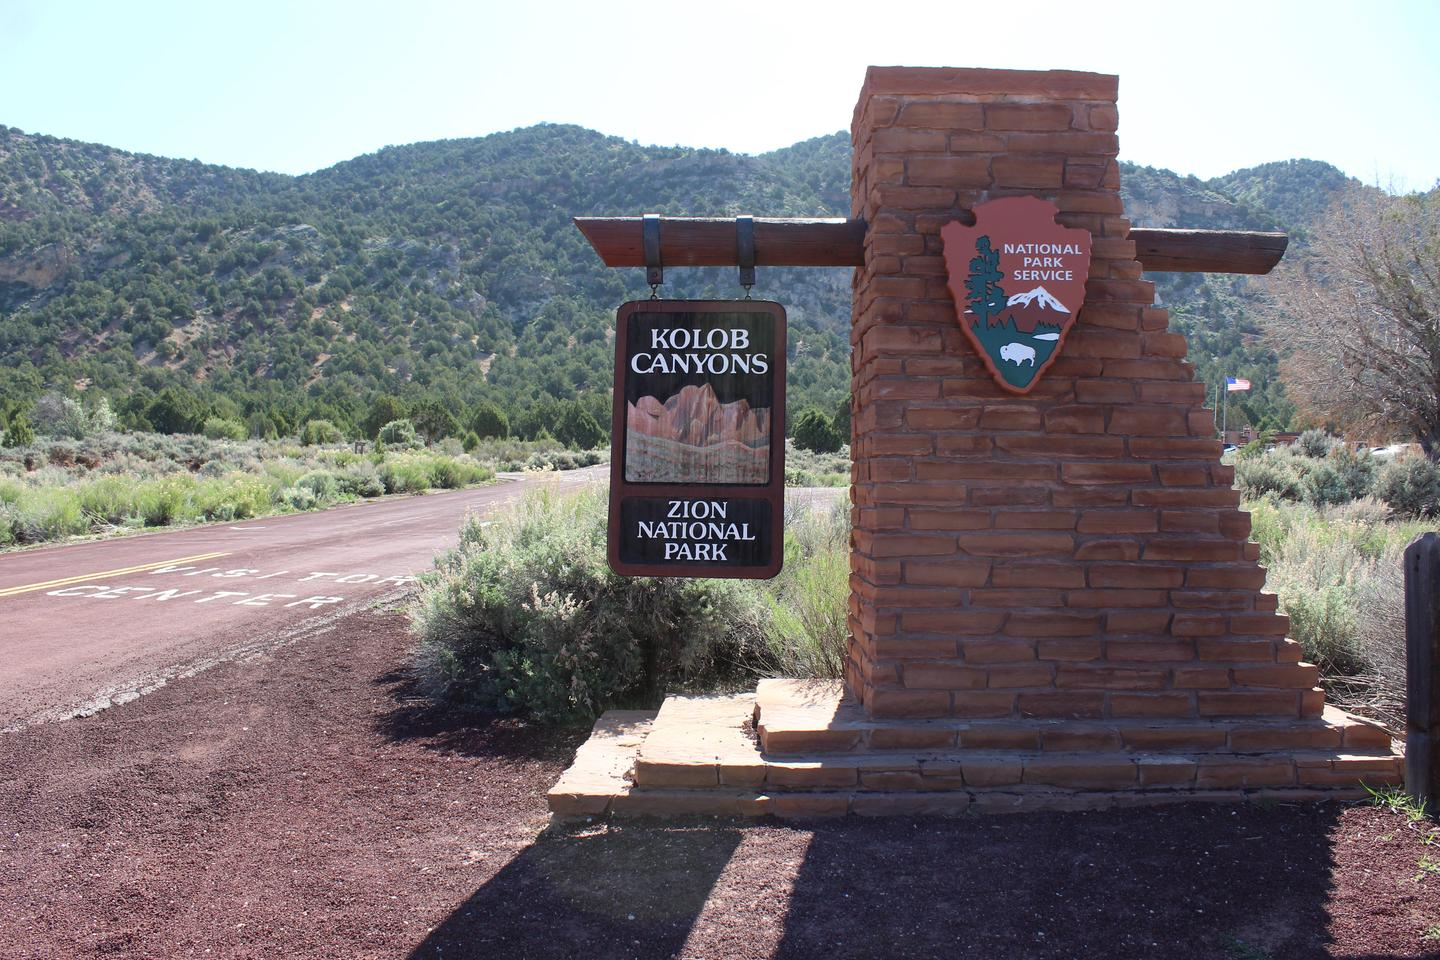 Kolob Canyons Entrance SignThe Kolob Canyons Entrance Monument is near the visitor center.